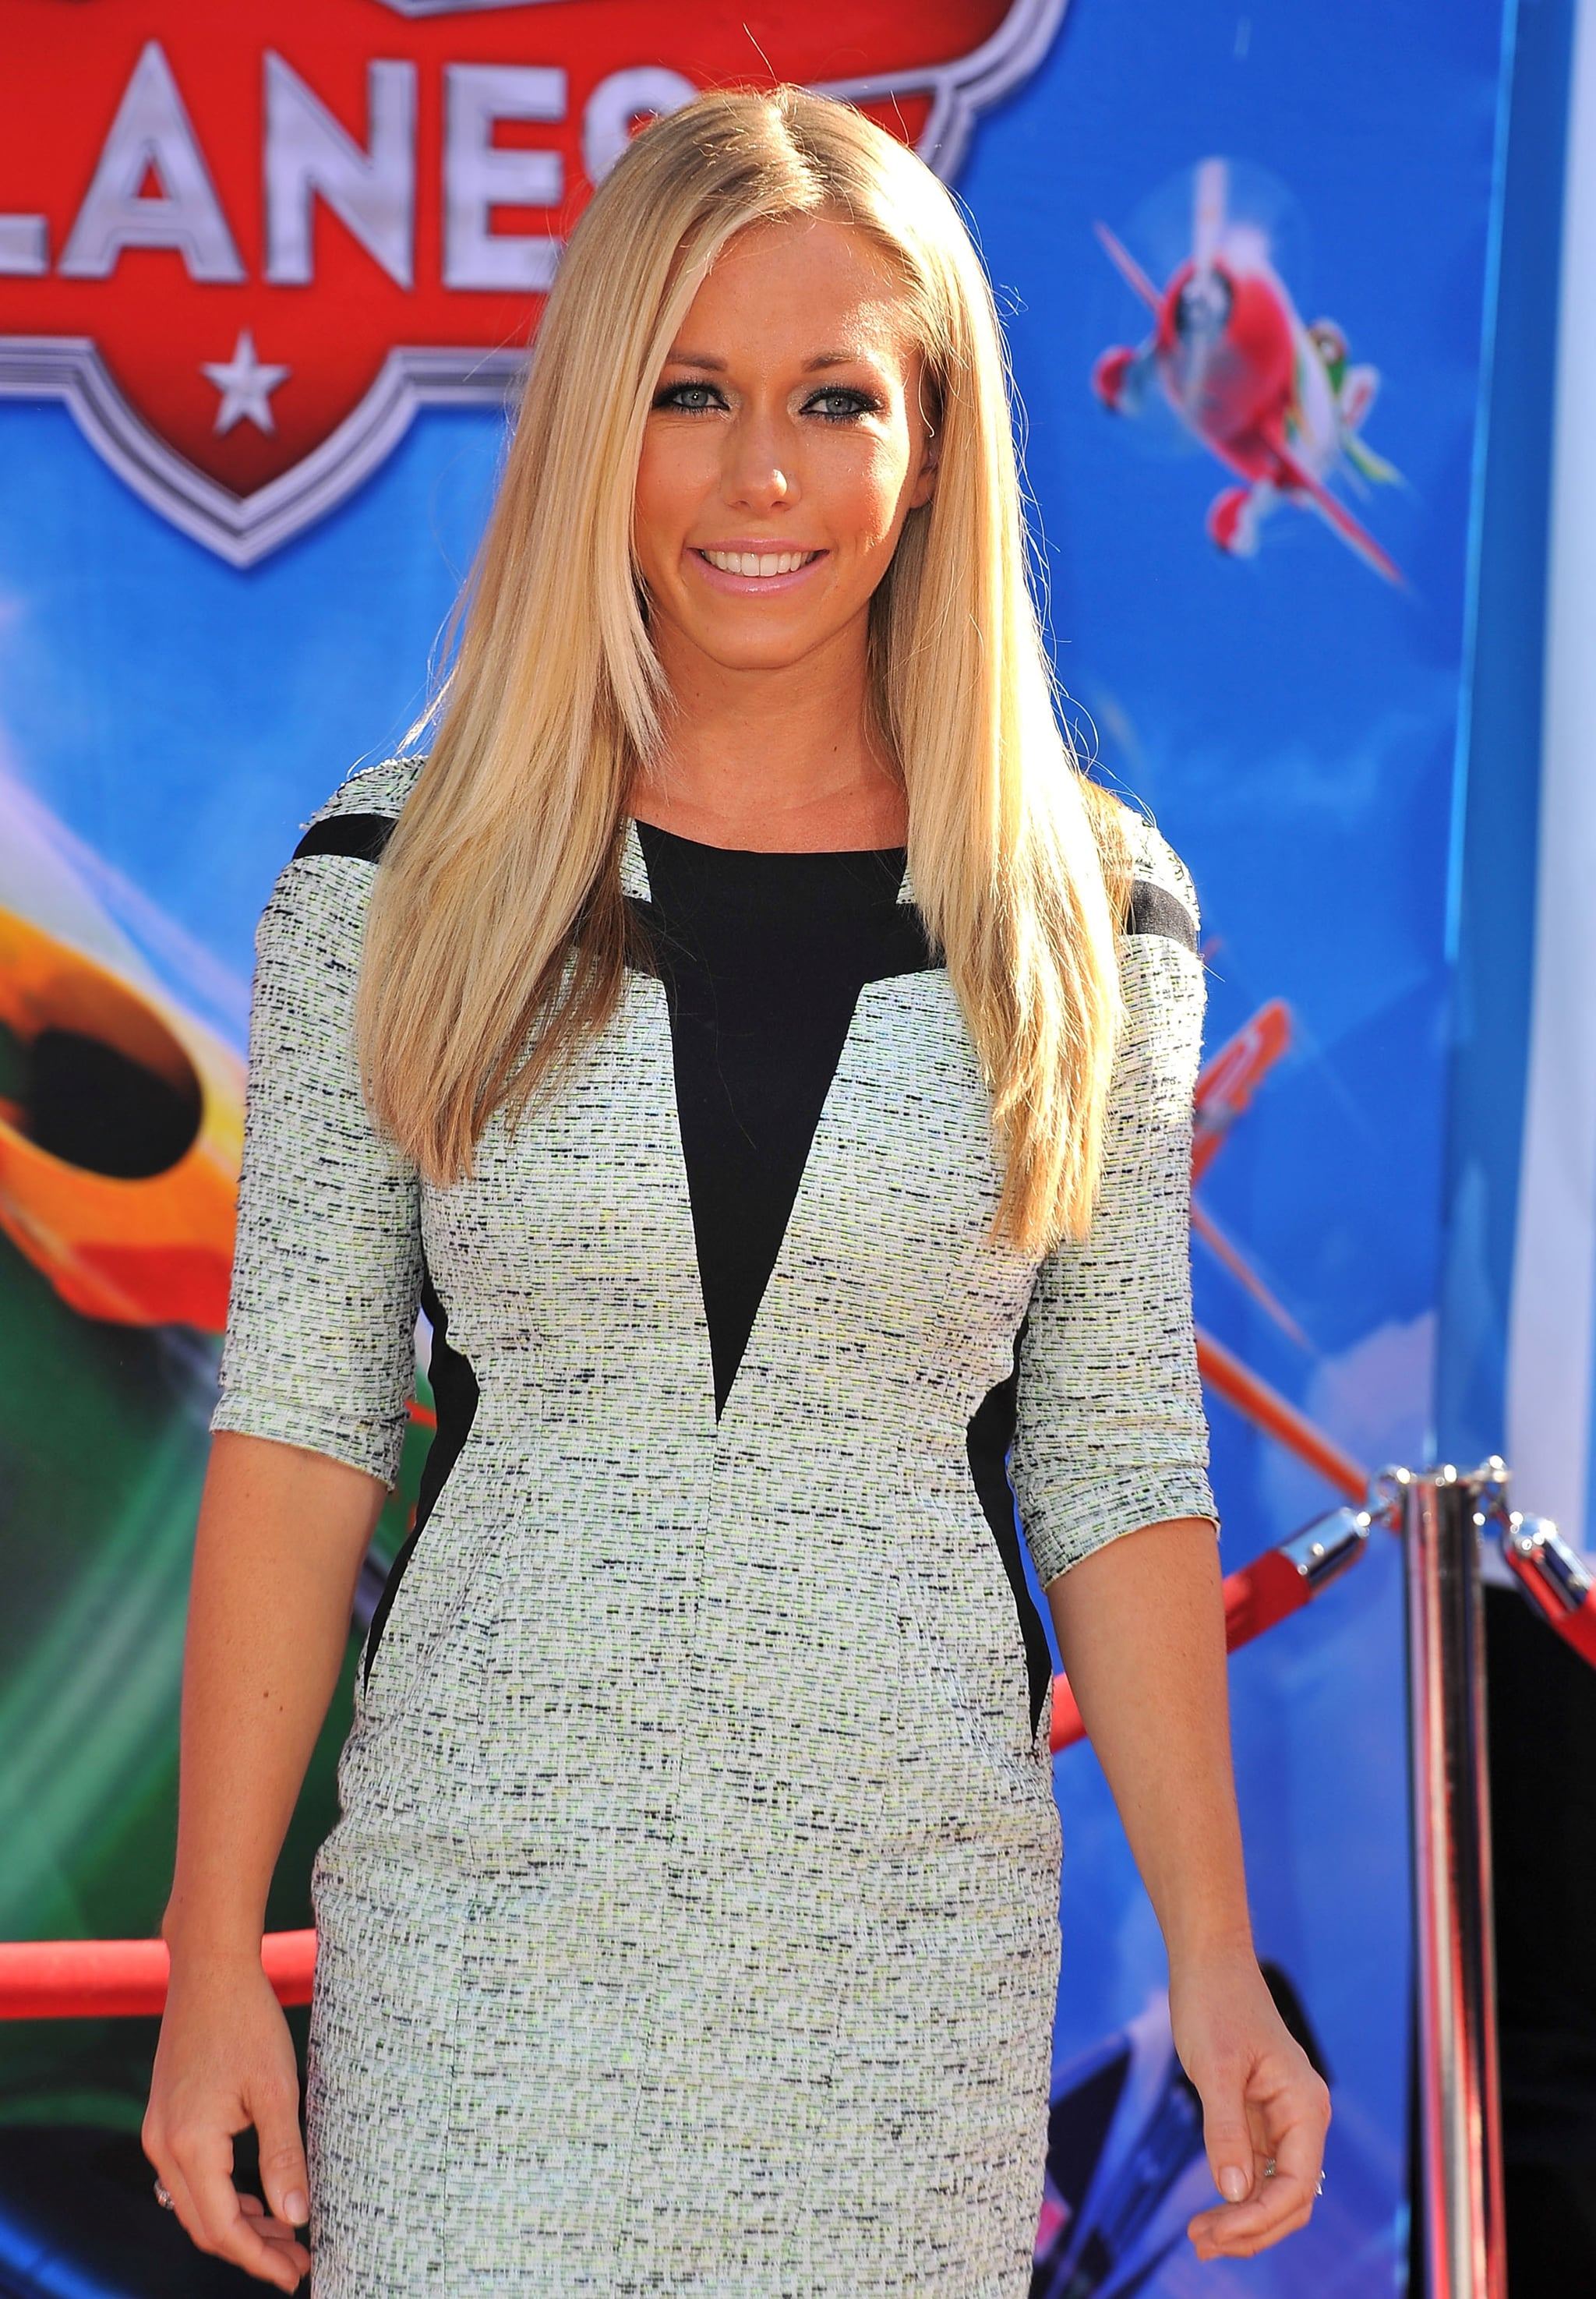 """Kendra Wilkinson confirmed the news of her second pregnancy during an appearance on the Today show in October (she and husband Hank Baskett are already parents to 3-year-old Hank VII). Kendra also shared the news on Twitter, posting a photo of her positive pregnancy test and saying, """"Round two. Here we go!!"""""""